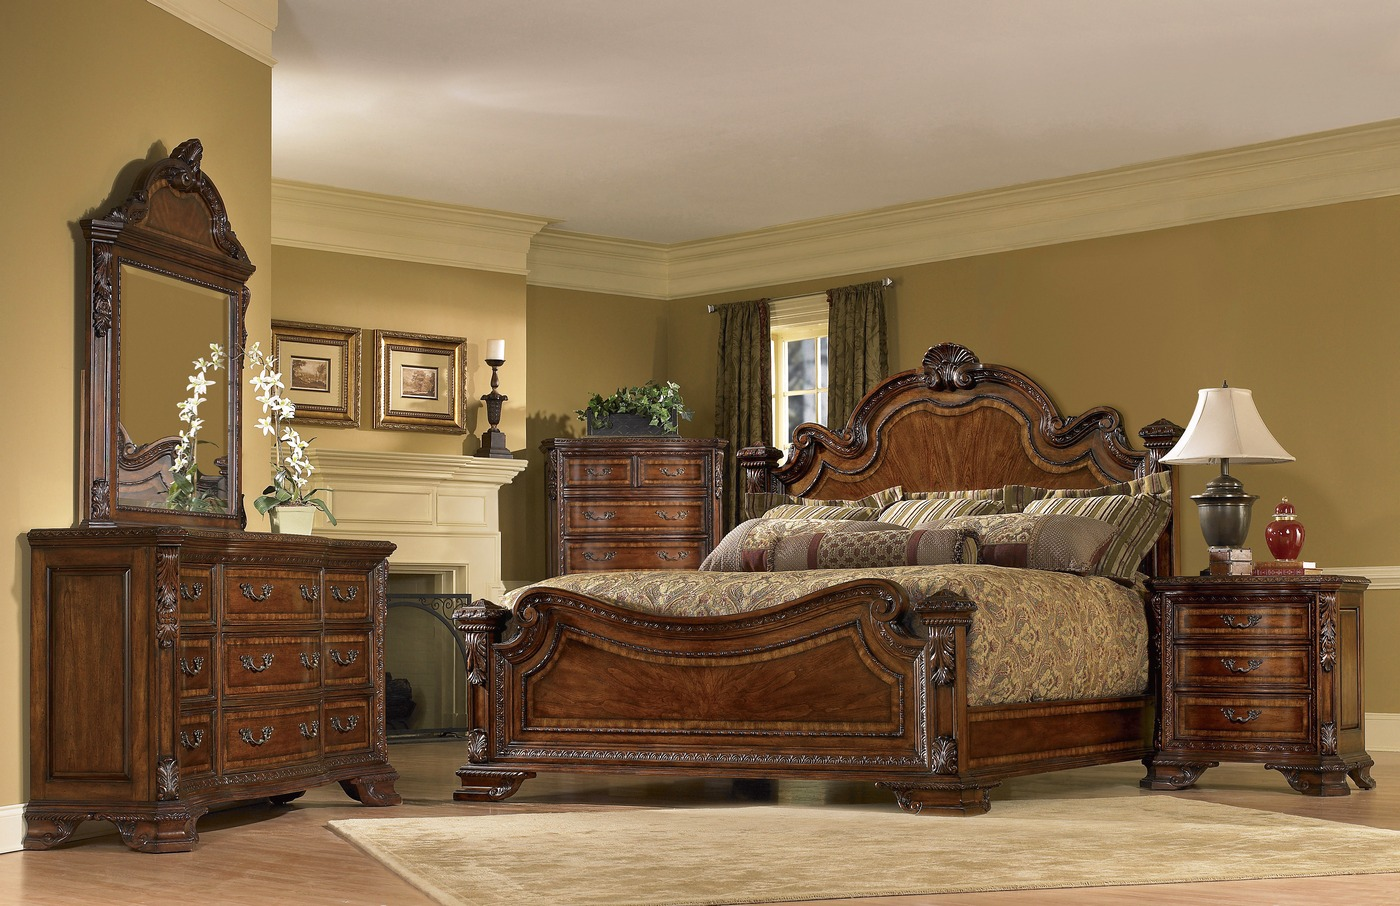 traditional bedroom chairs world bedroom set european style bedroom furniture 13561